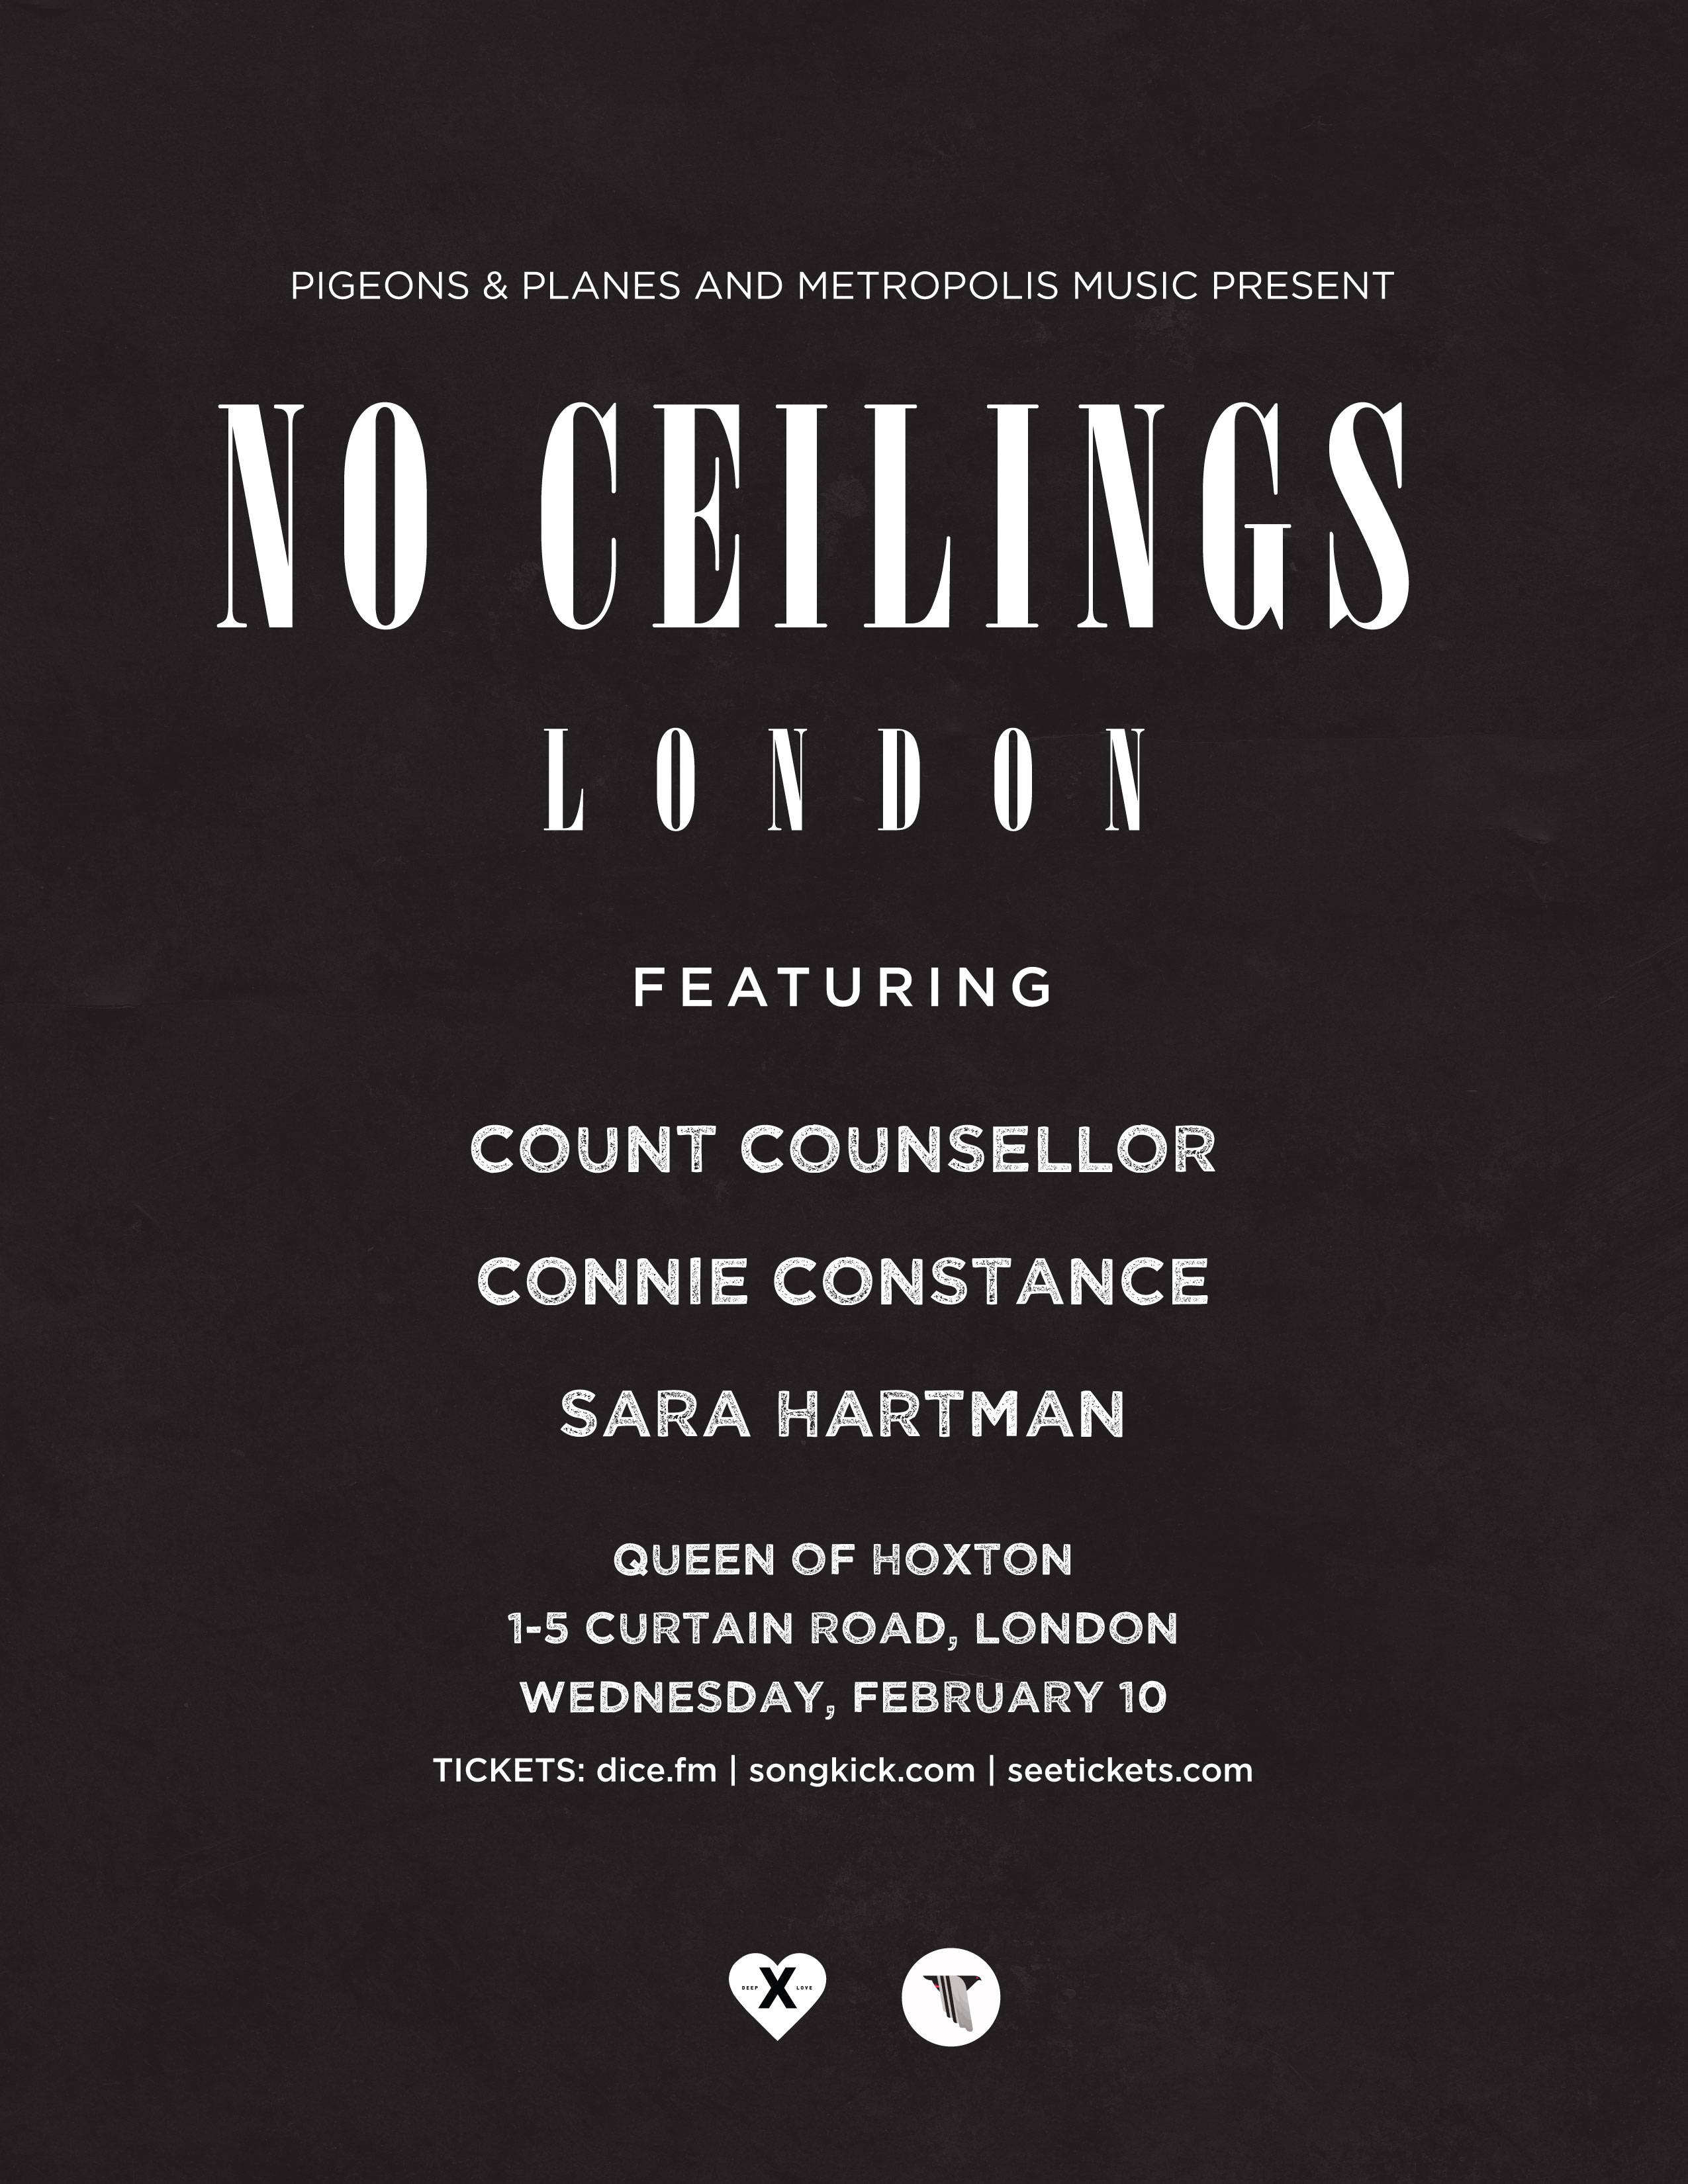 NoCeilings-London-feb